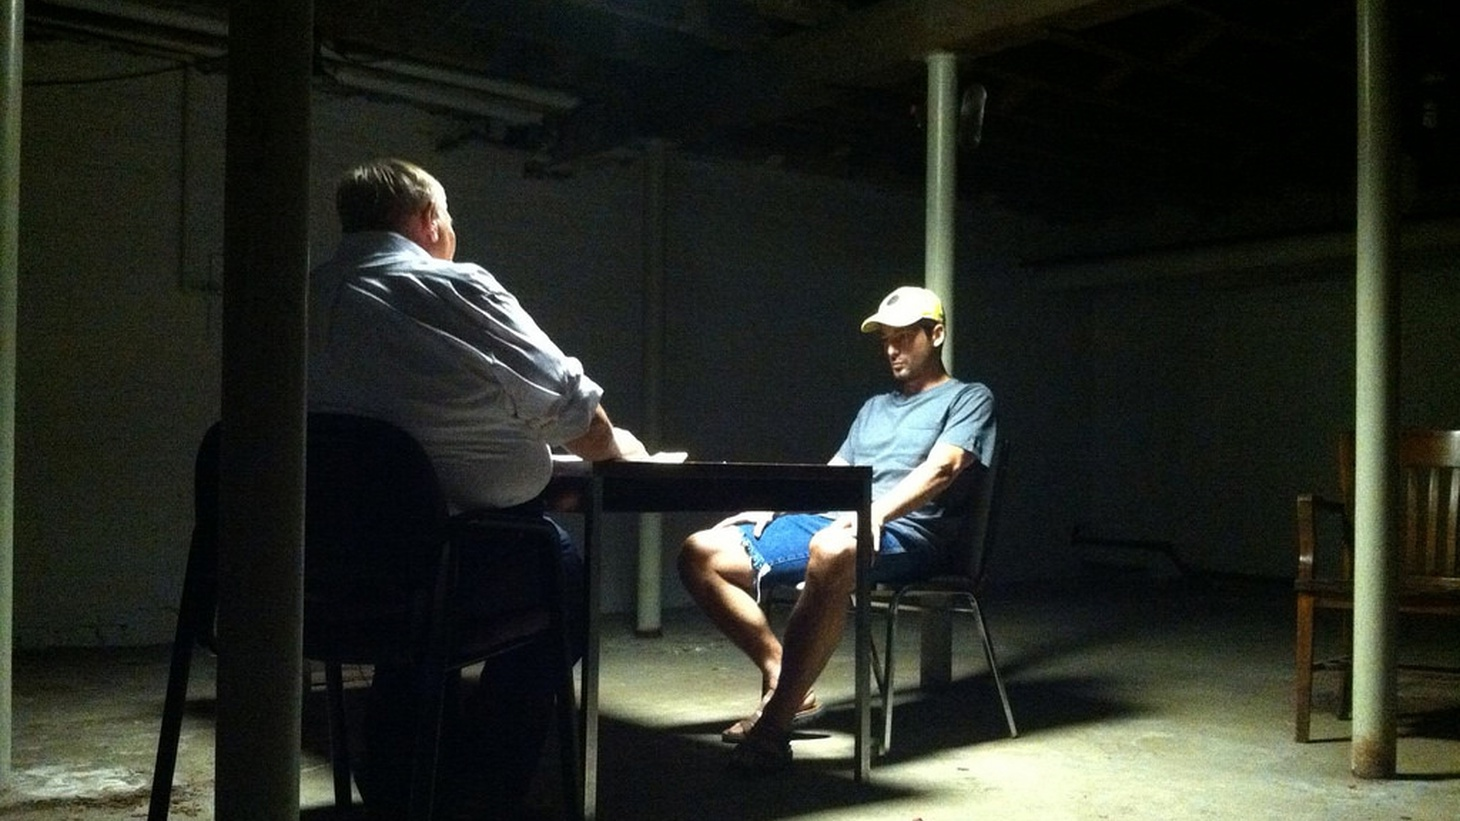 Thanks to TV, we all think we know how police question suspects. The stark room with bad lighting, a two way mirror, and a good cop-bad cop routine. Traditionally police interrogation is a confrontational interview, designed to catch suspects in a lie, or contradicting themselves, to make them feel vulnerable and ideally to extract a confession.